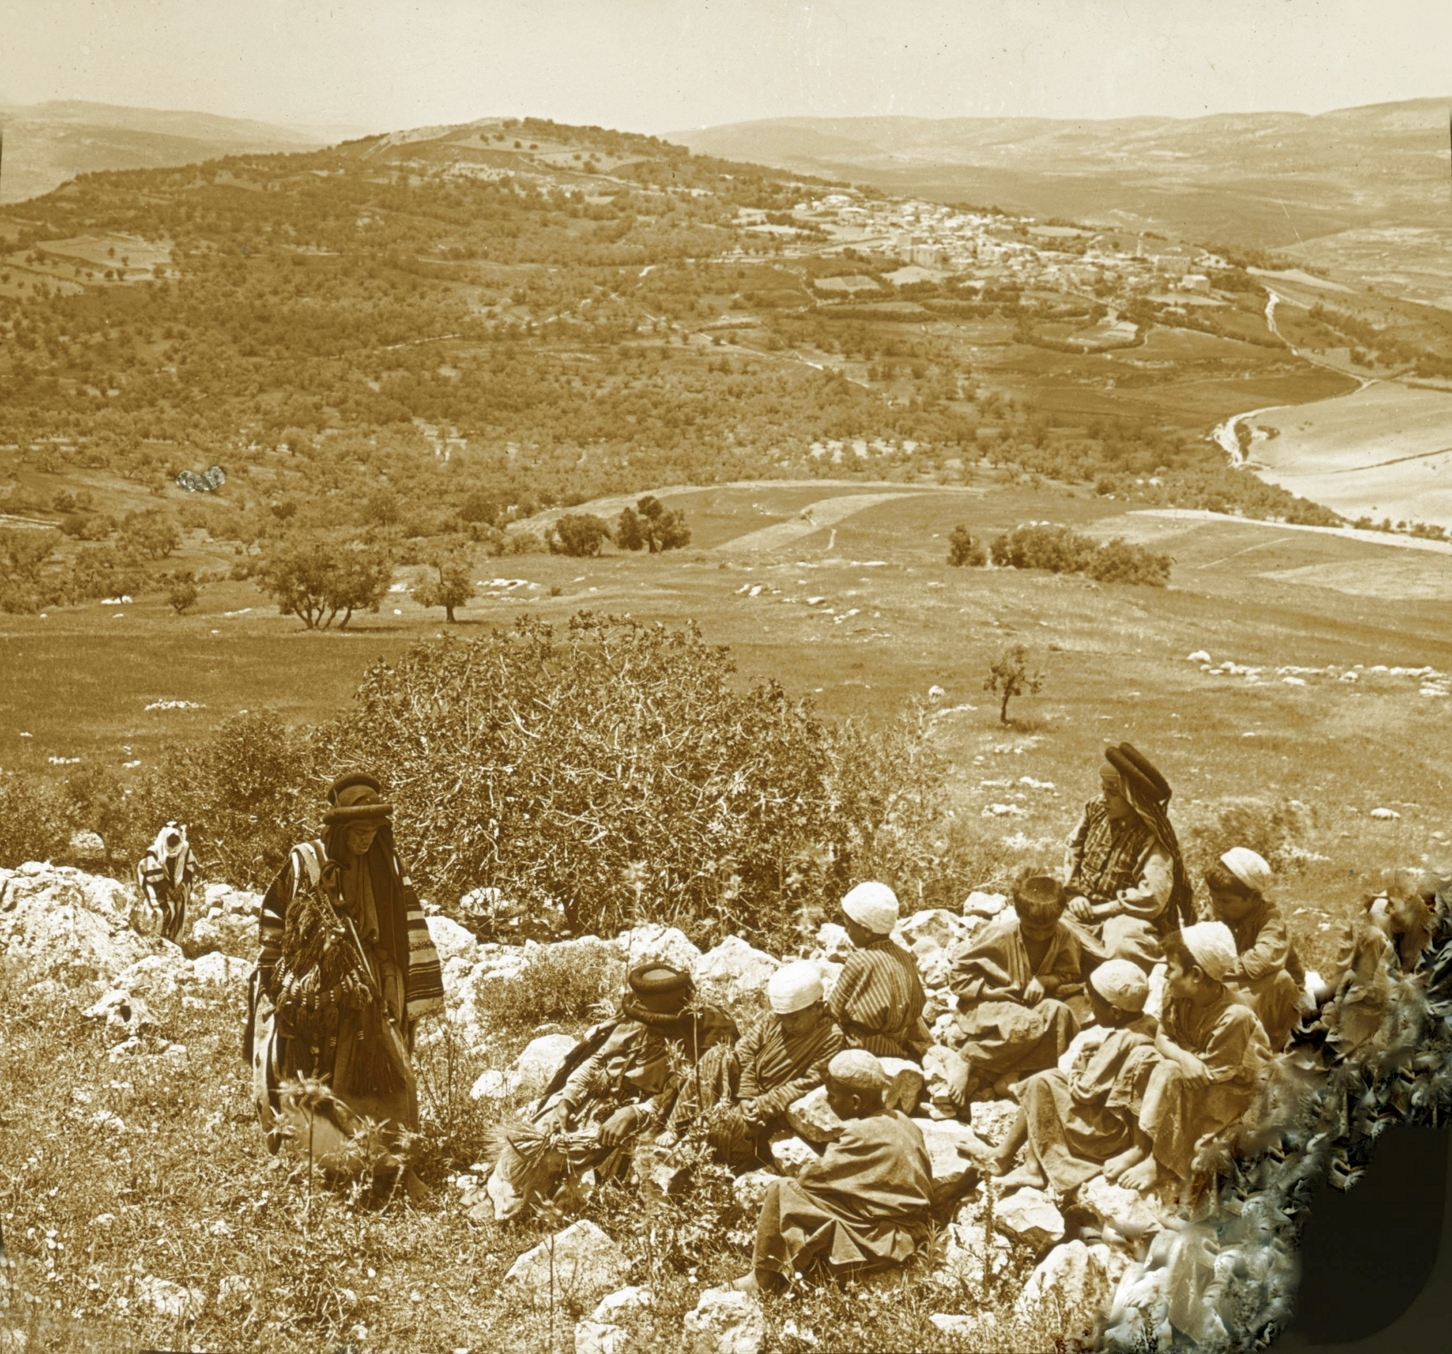 Nablus - نابلس : NABLUS - Late 19th, early 20th c. 39 - Sabastiya from the Southeast